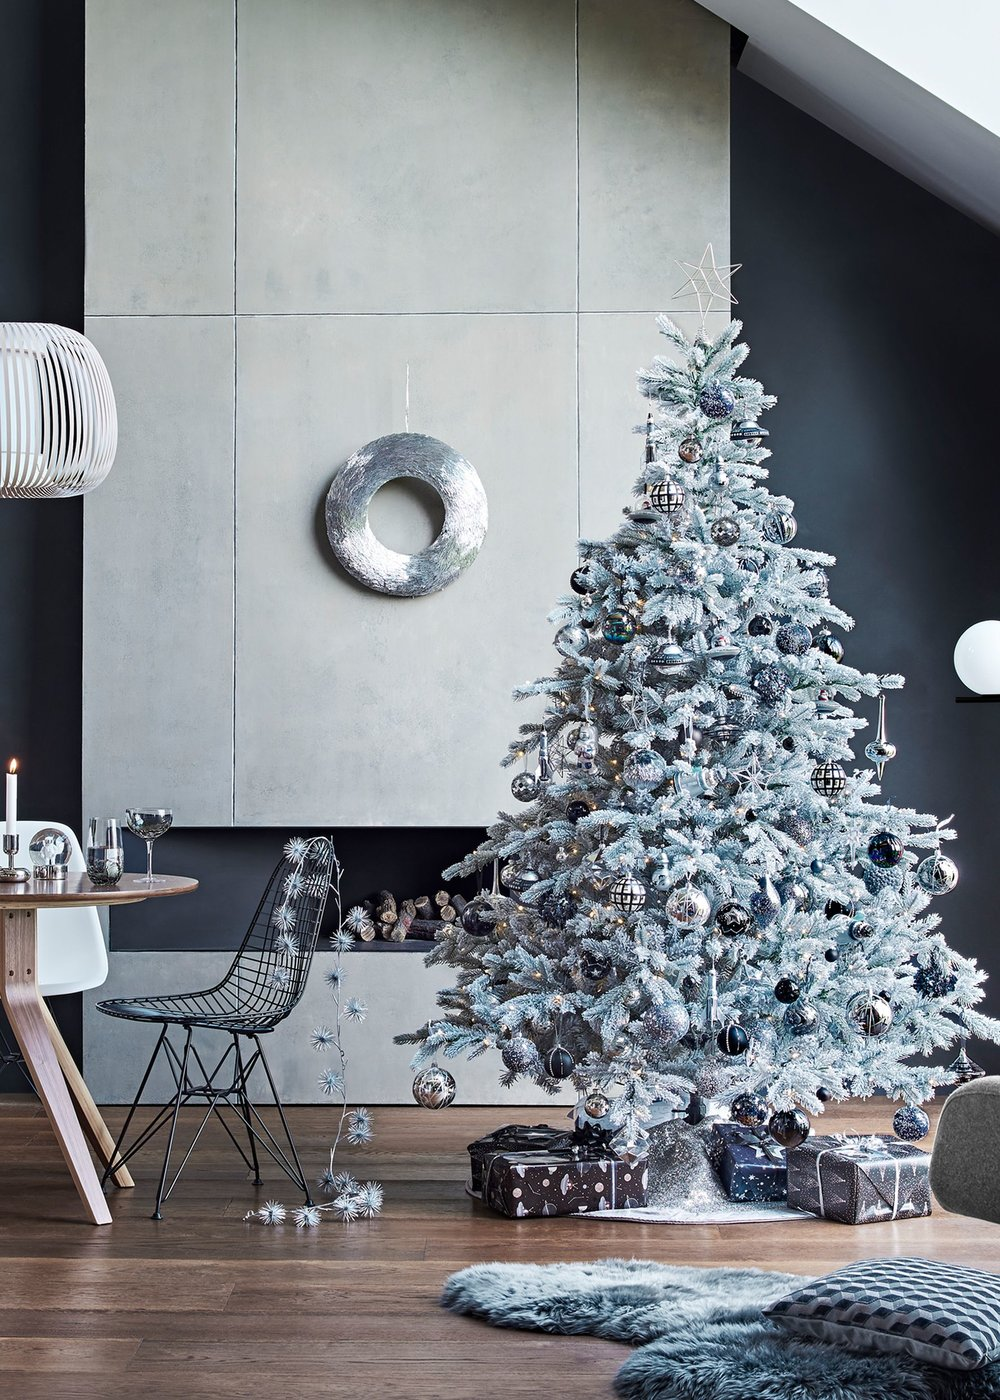 Cosmic Christmas - So you thought Santa in a speedboat was a bit out there, how about in a space ship? The cosmic Christmas decoration trend is full of futuristic pieces like iridescent reindeer, metallic stars and astronauts. This trend is a fun way to embrace a darker, monochromatic colour scheme this festive season.Image: John Lewis & Partners